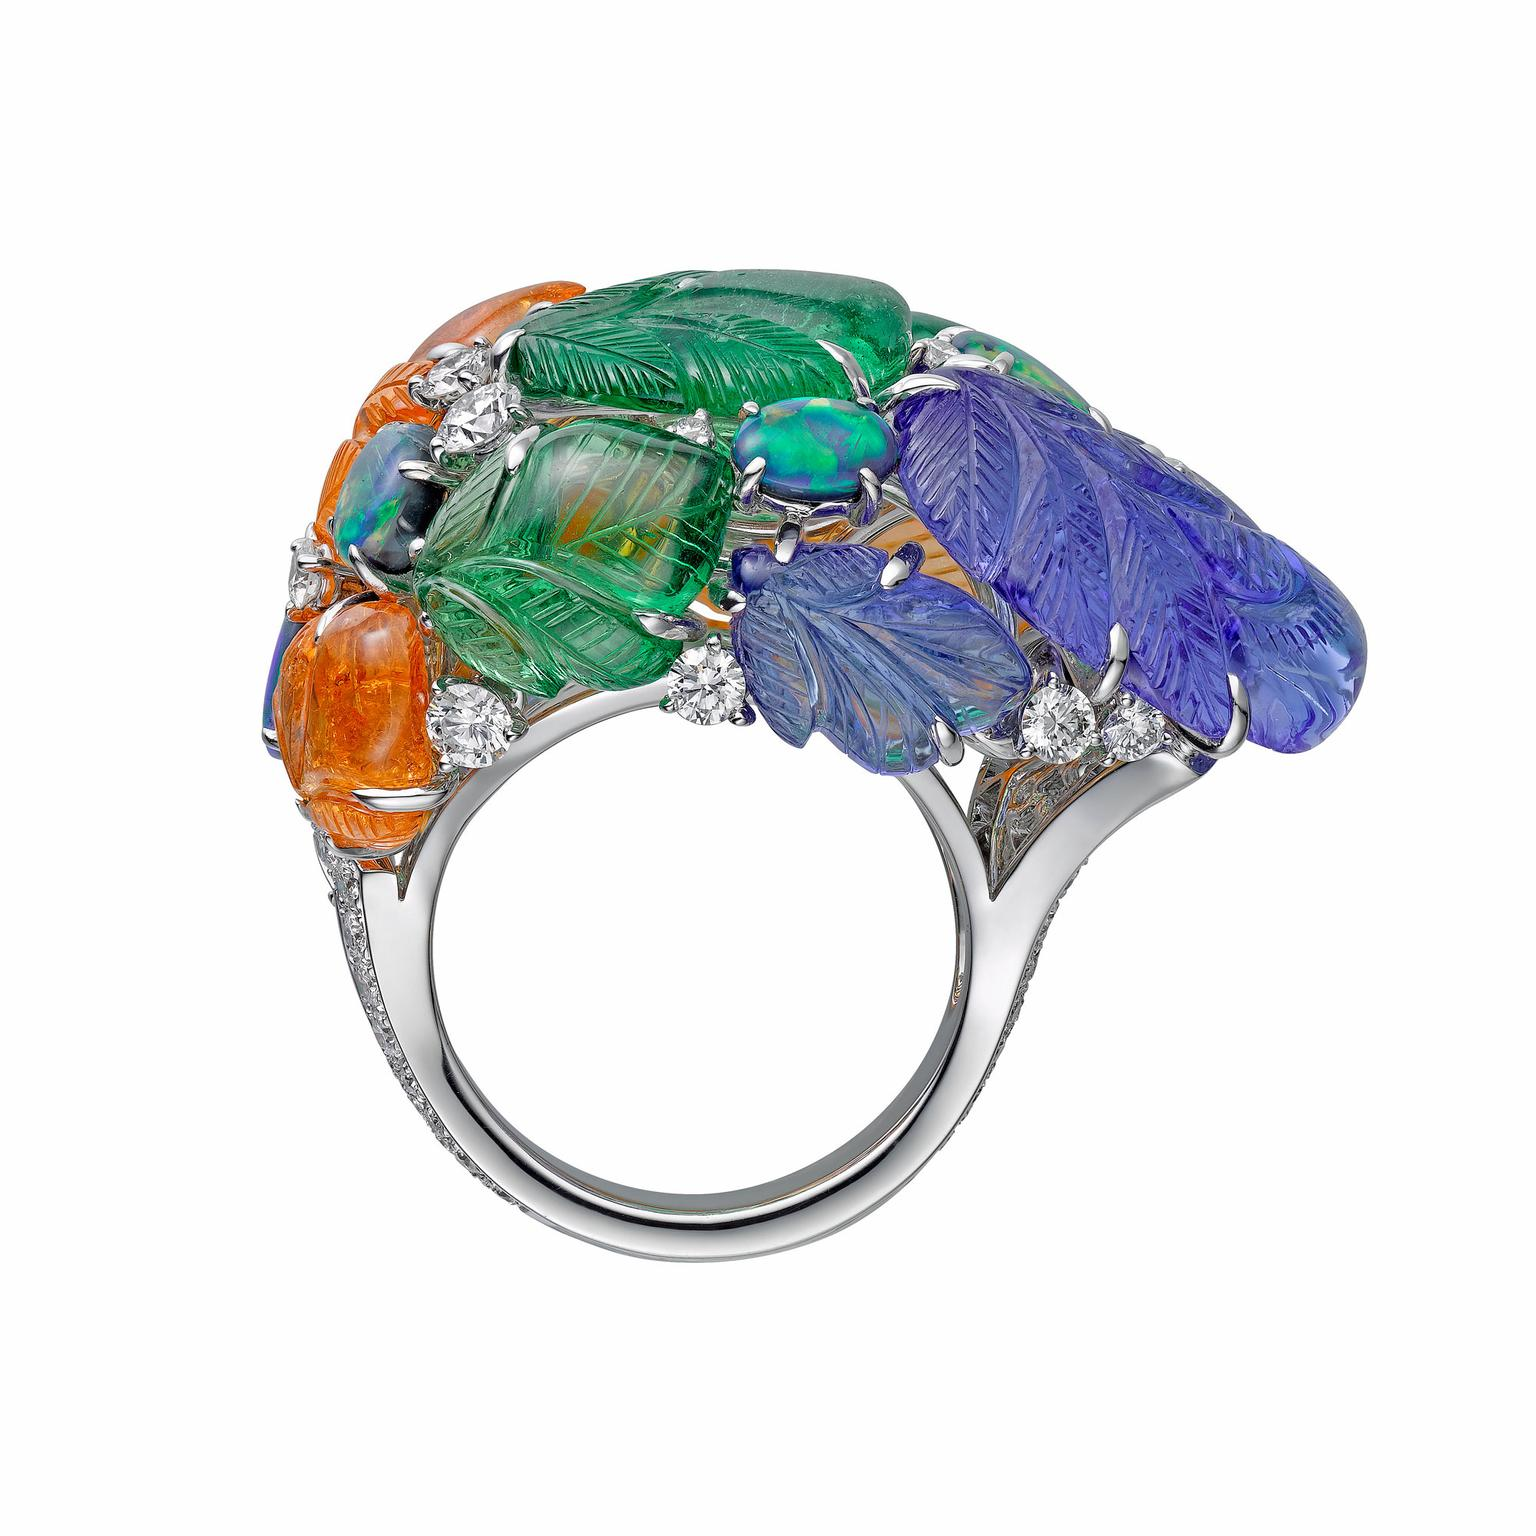 Cartier Etourdissant Pushkar high jewellery ring